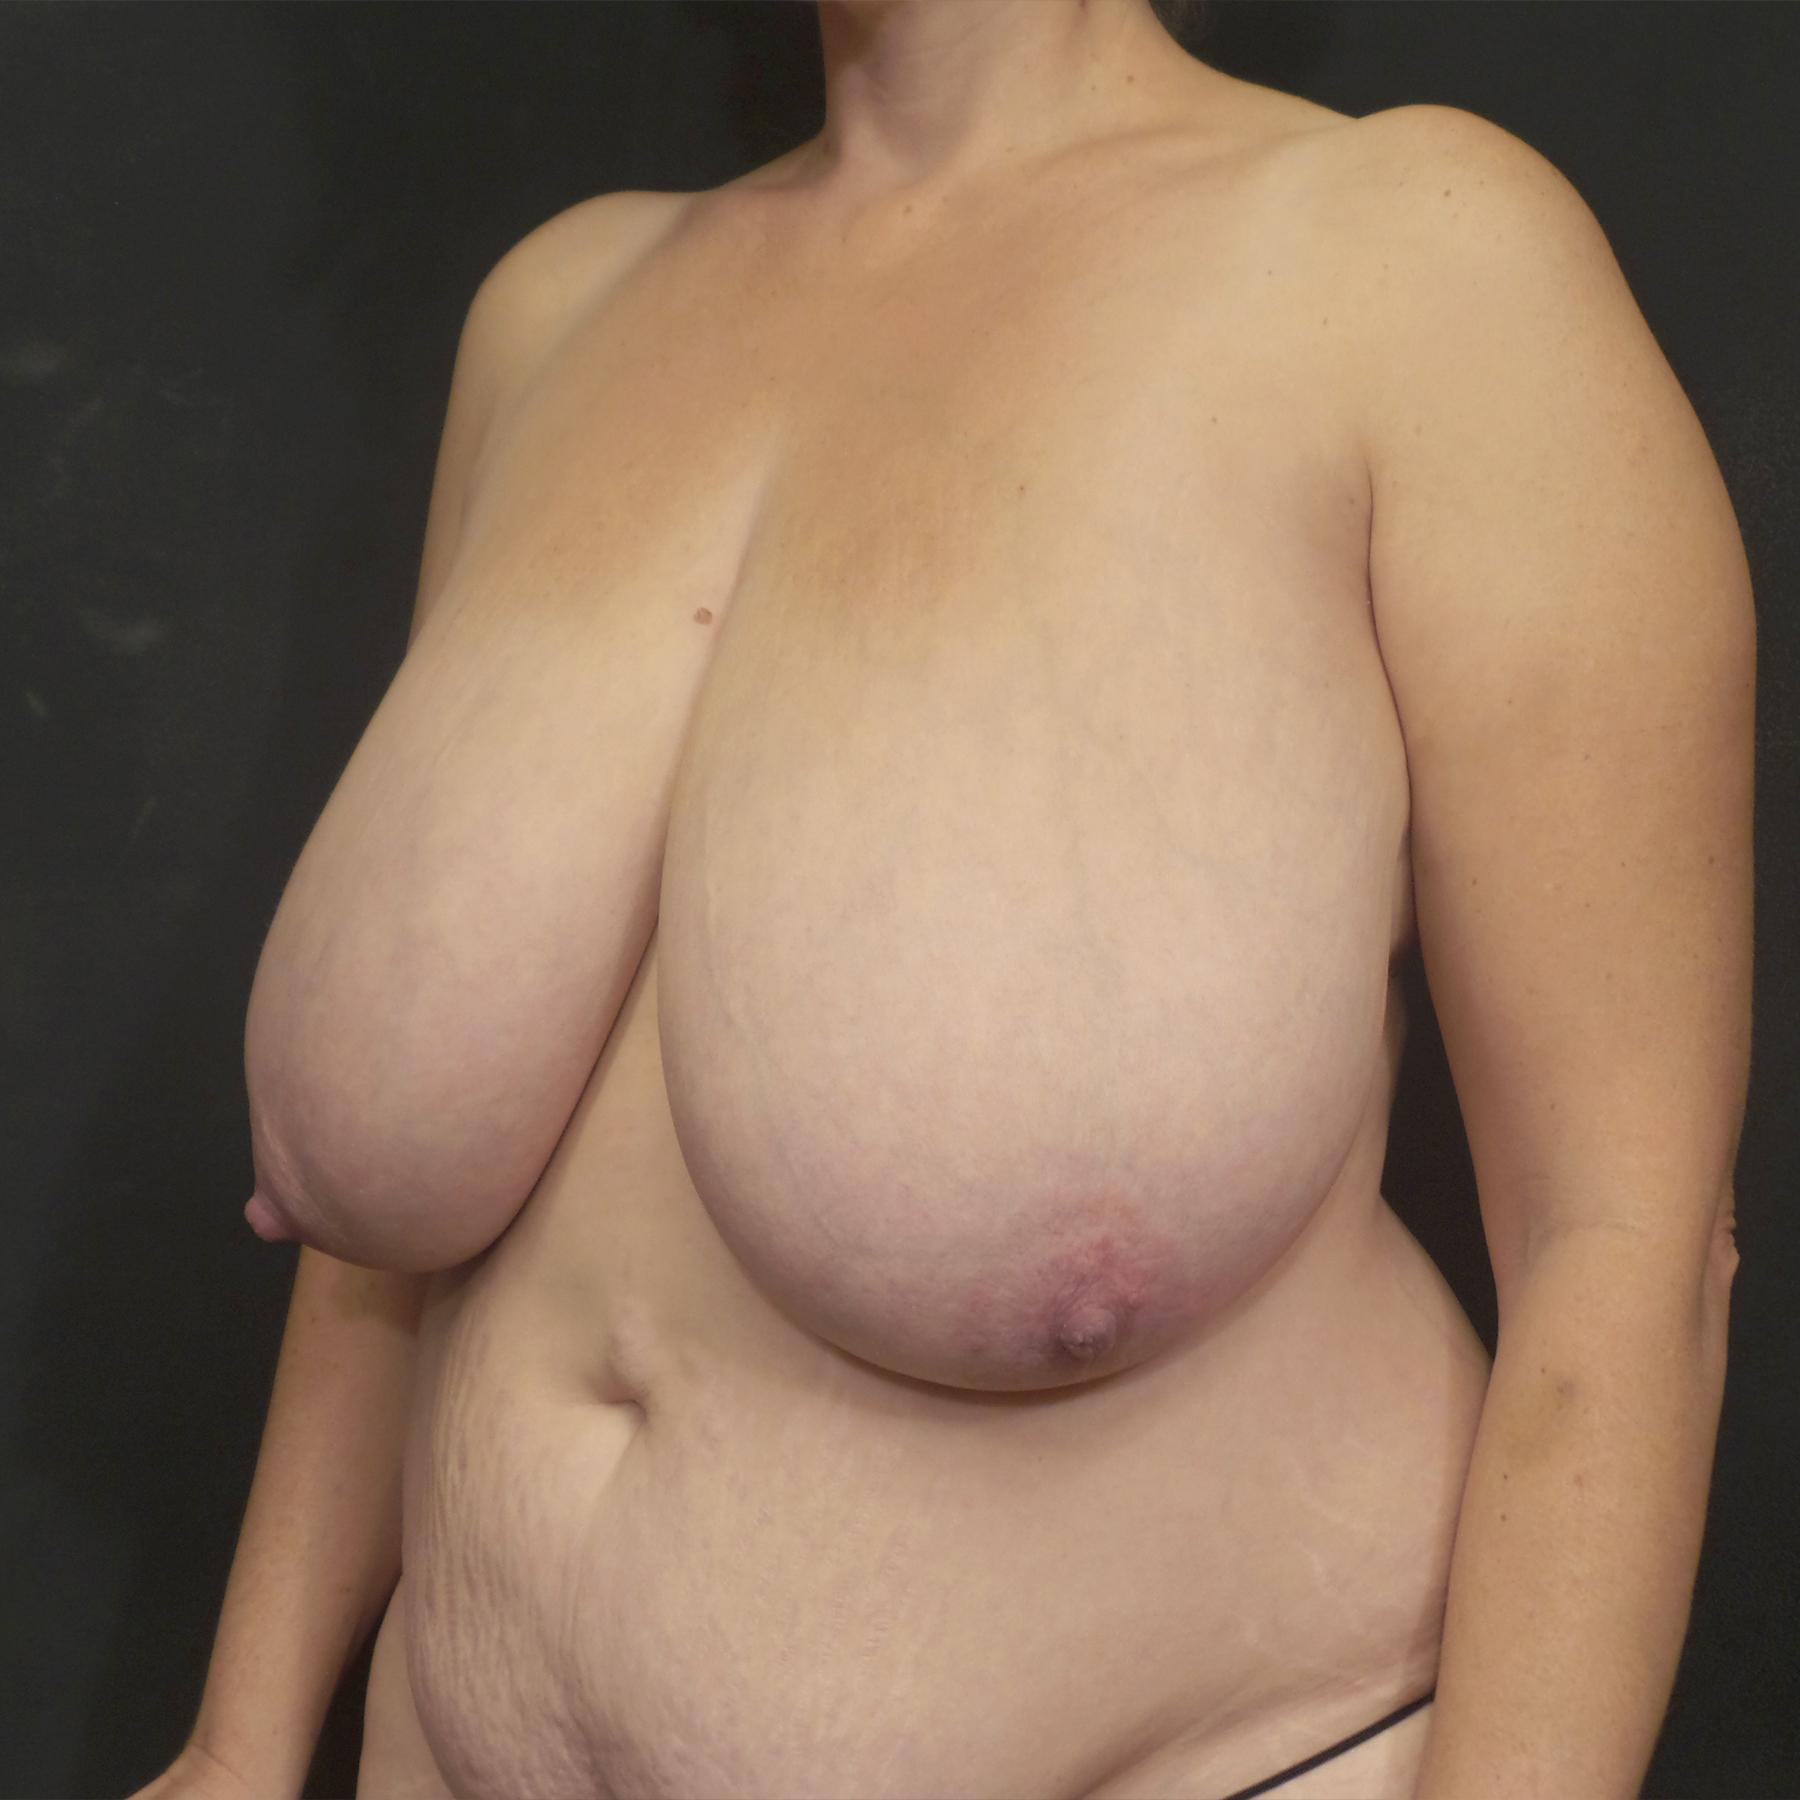 A Before photo of a Breast Reduction Plastic Surgery by Dr. Craig Jonov in Seattle, Bellevue, and Kirkland